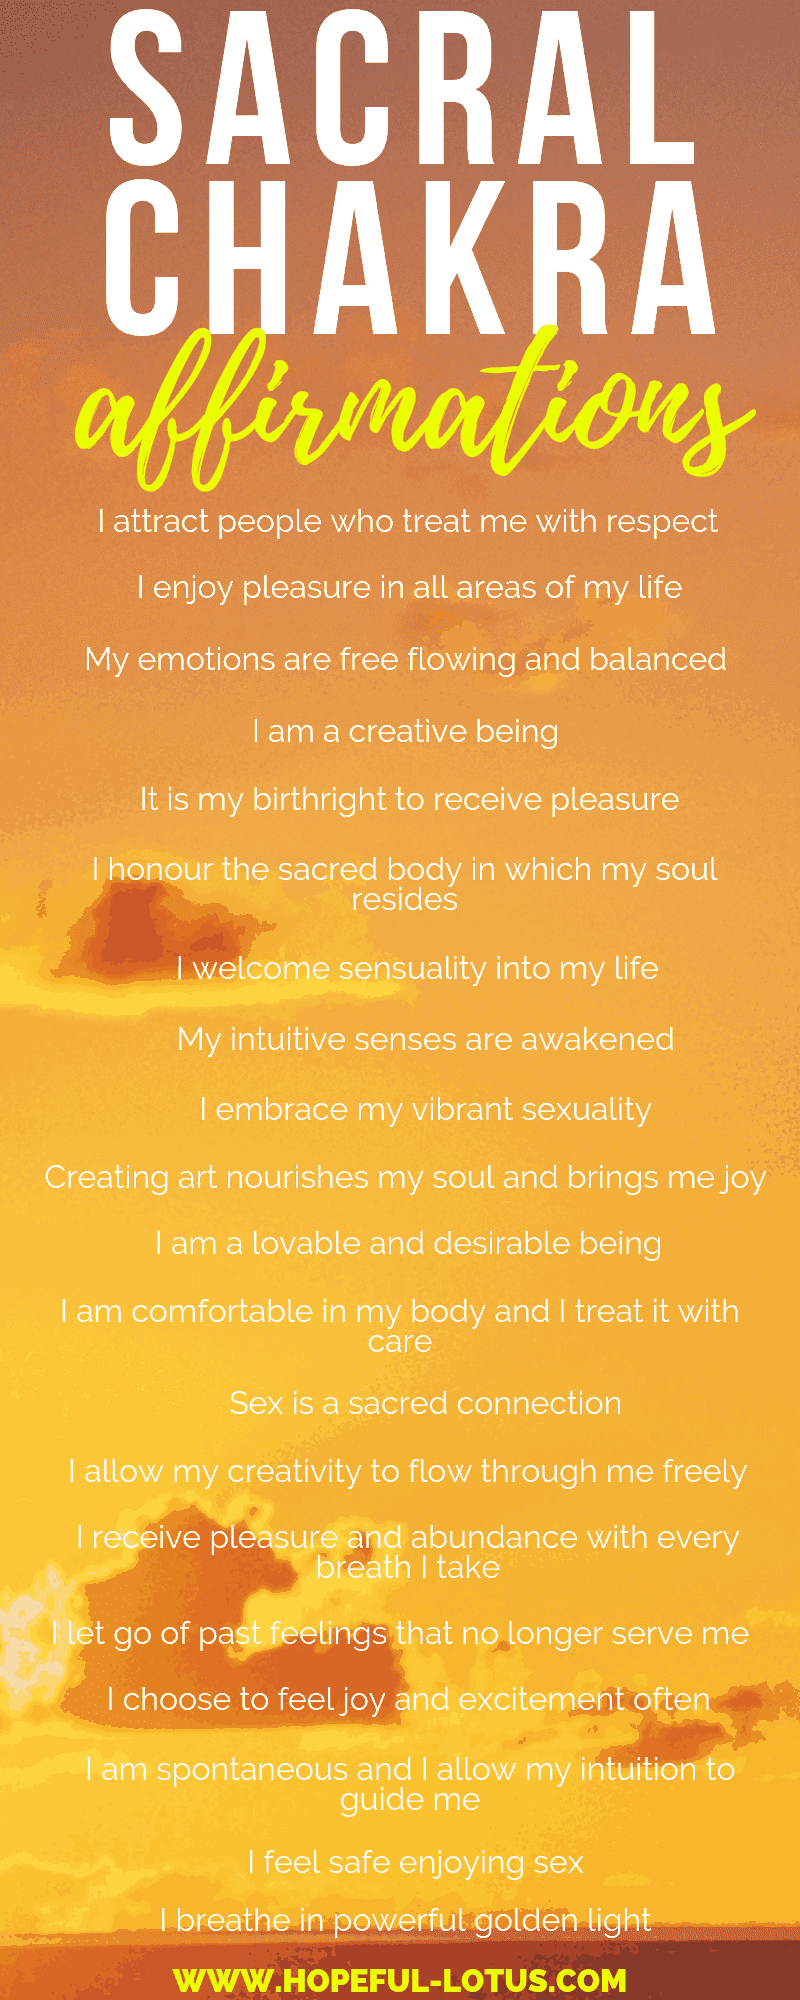 If you're suffering from a sacral chakra imbalance you might experience difficulties with your sexuality, creativity or emotion regulation. Sacral chakra affirmations are a great way to unblock and balance the sacral chakra and get you feeling back to normal! Use these 20 powerful mantras to heal and restore your sacral chakra!